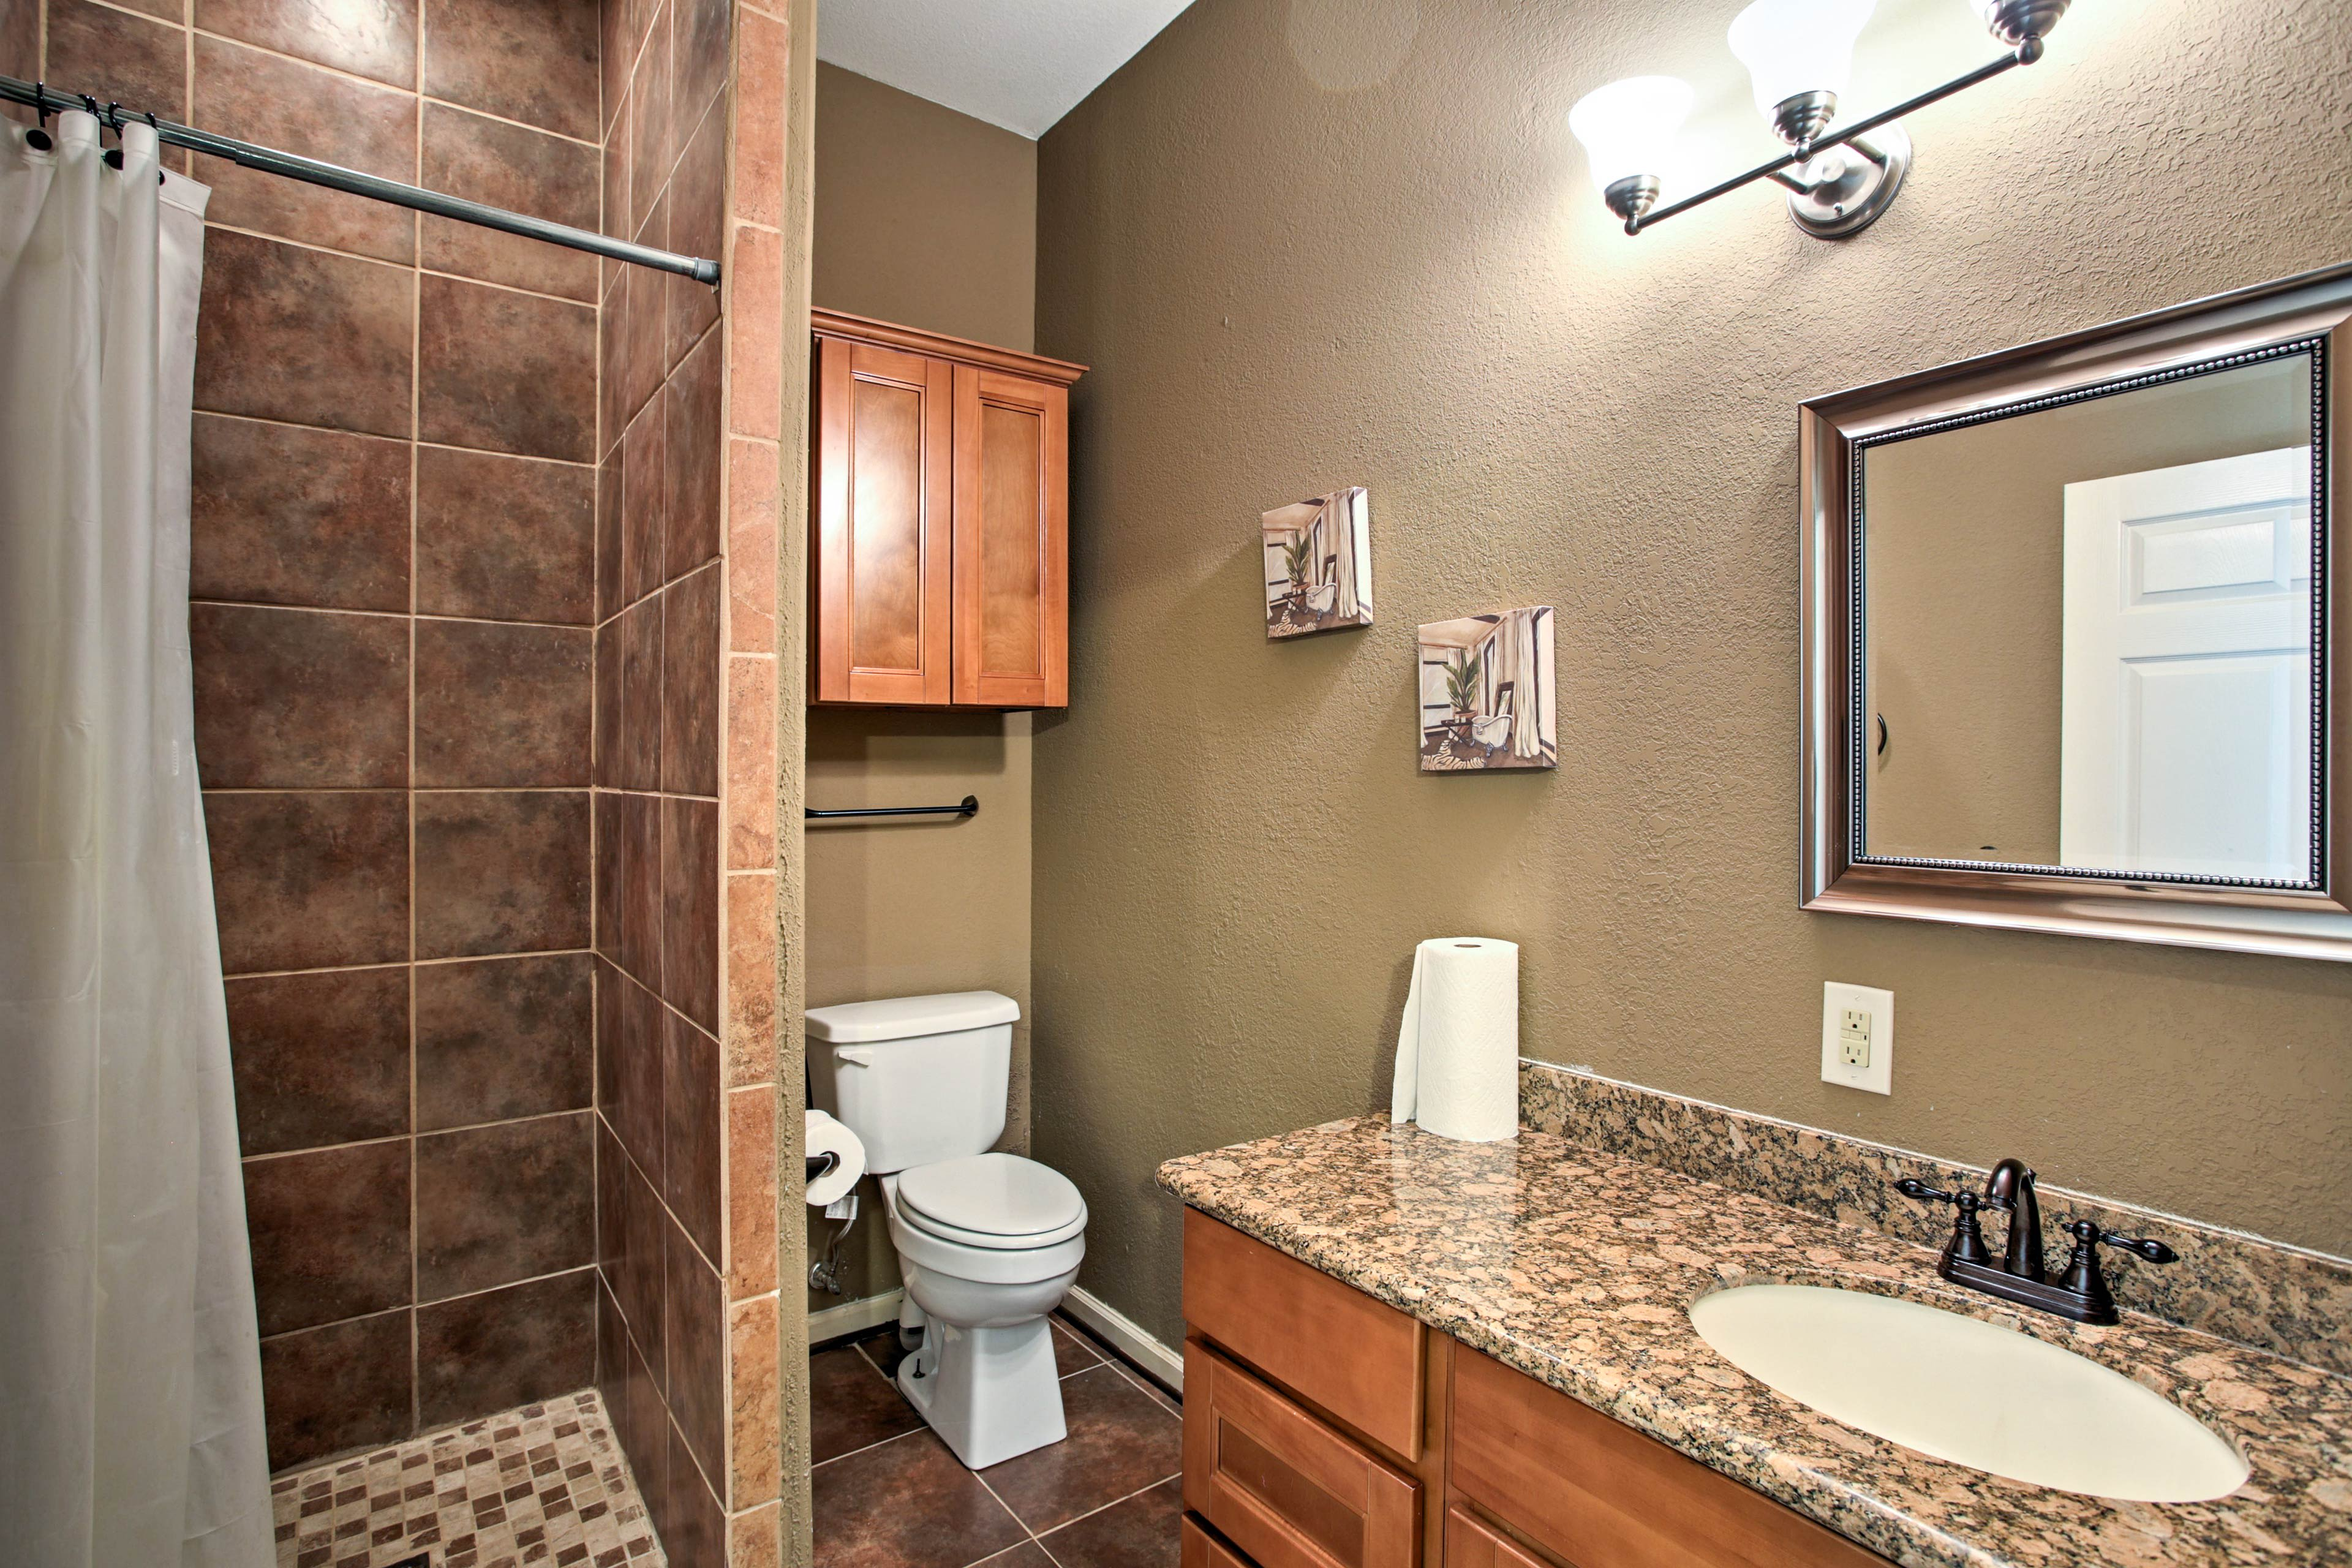 Easily stick with your morning routine with 4 full bathrooms to choose from.